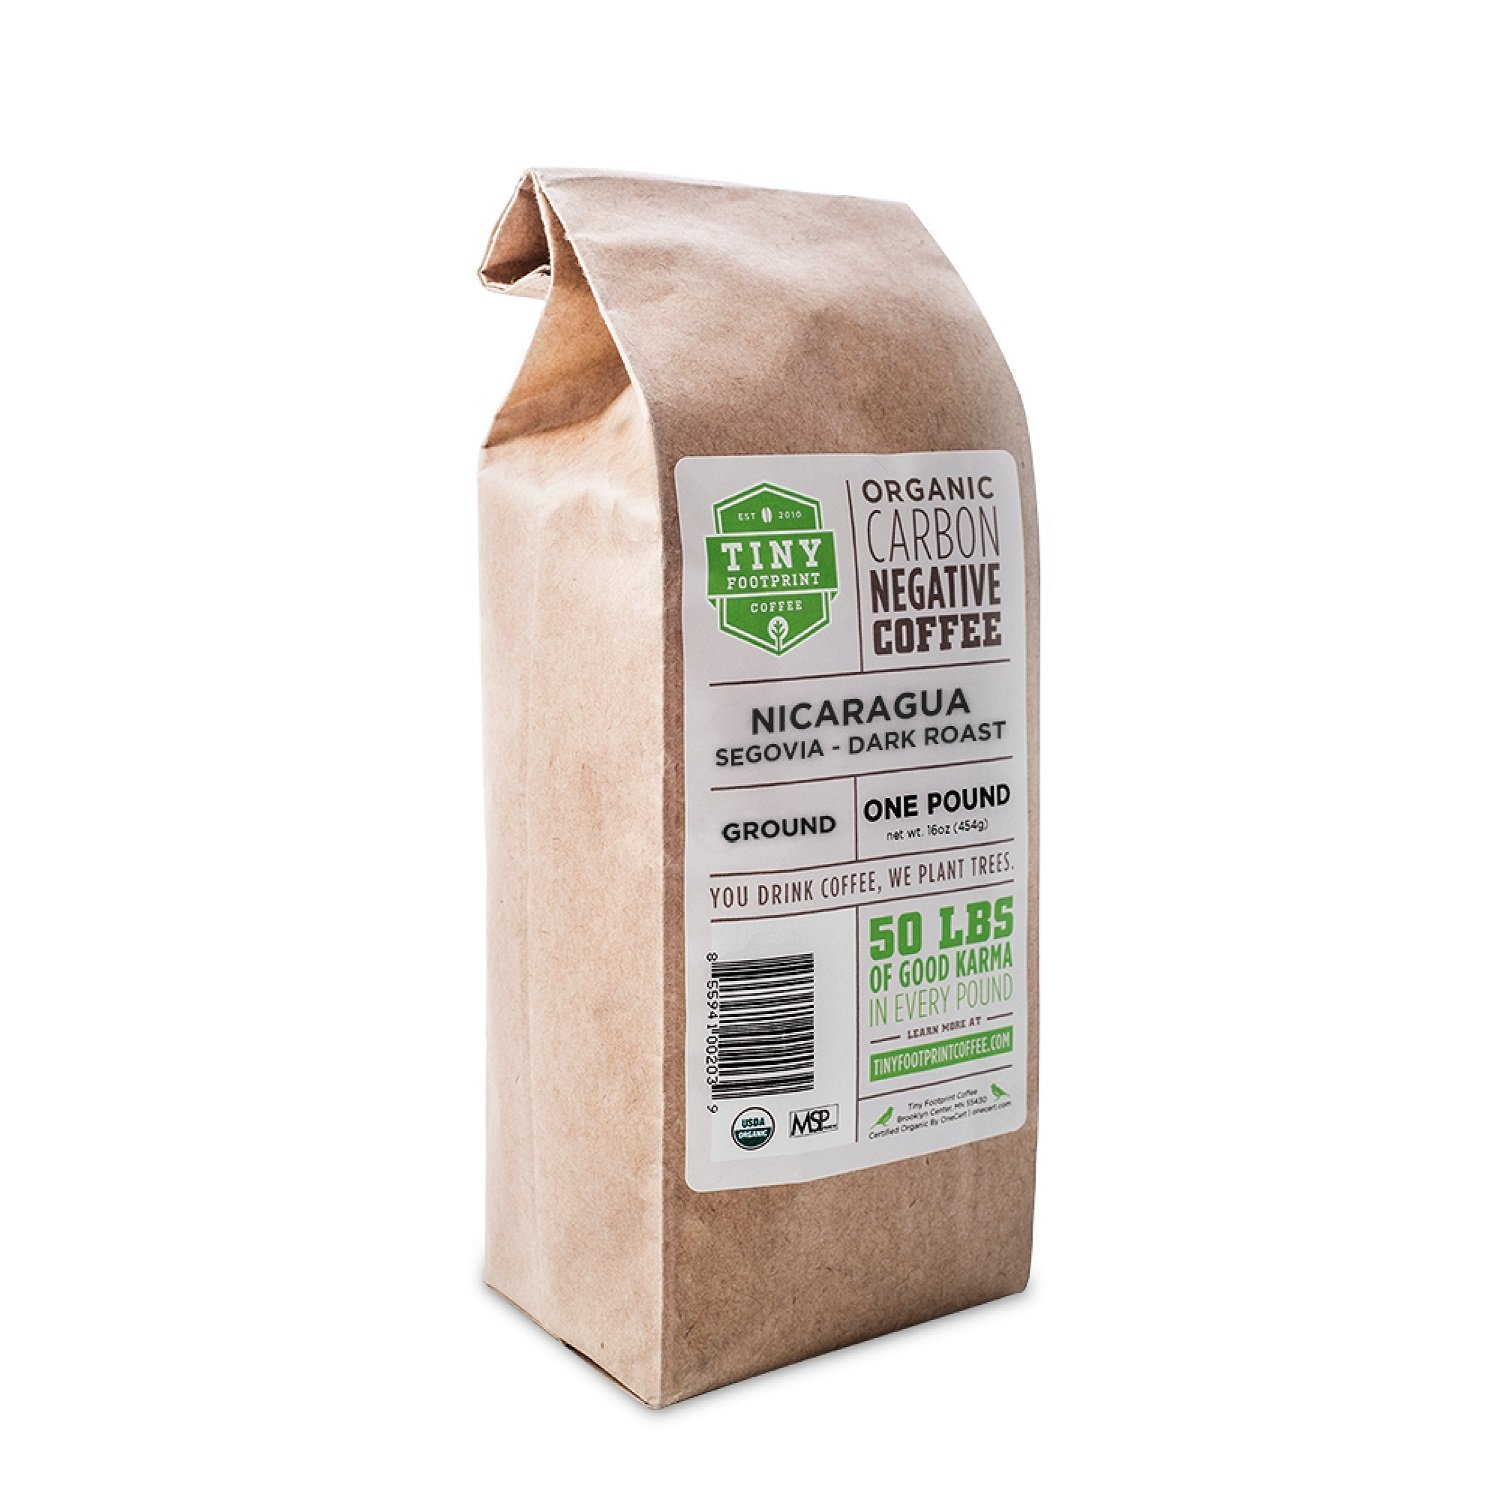 Tiny Footprint Coffee Organic Fair Trade Nicaragua Segovia Dark Roast, Ground Coffee, 1 Pound by Tiny Footprint Coffee